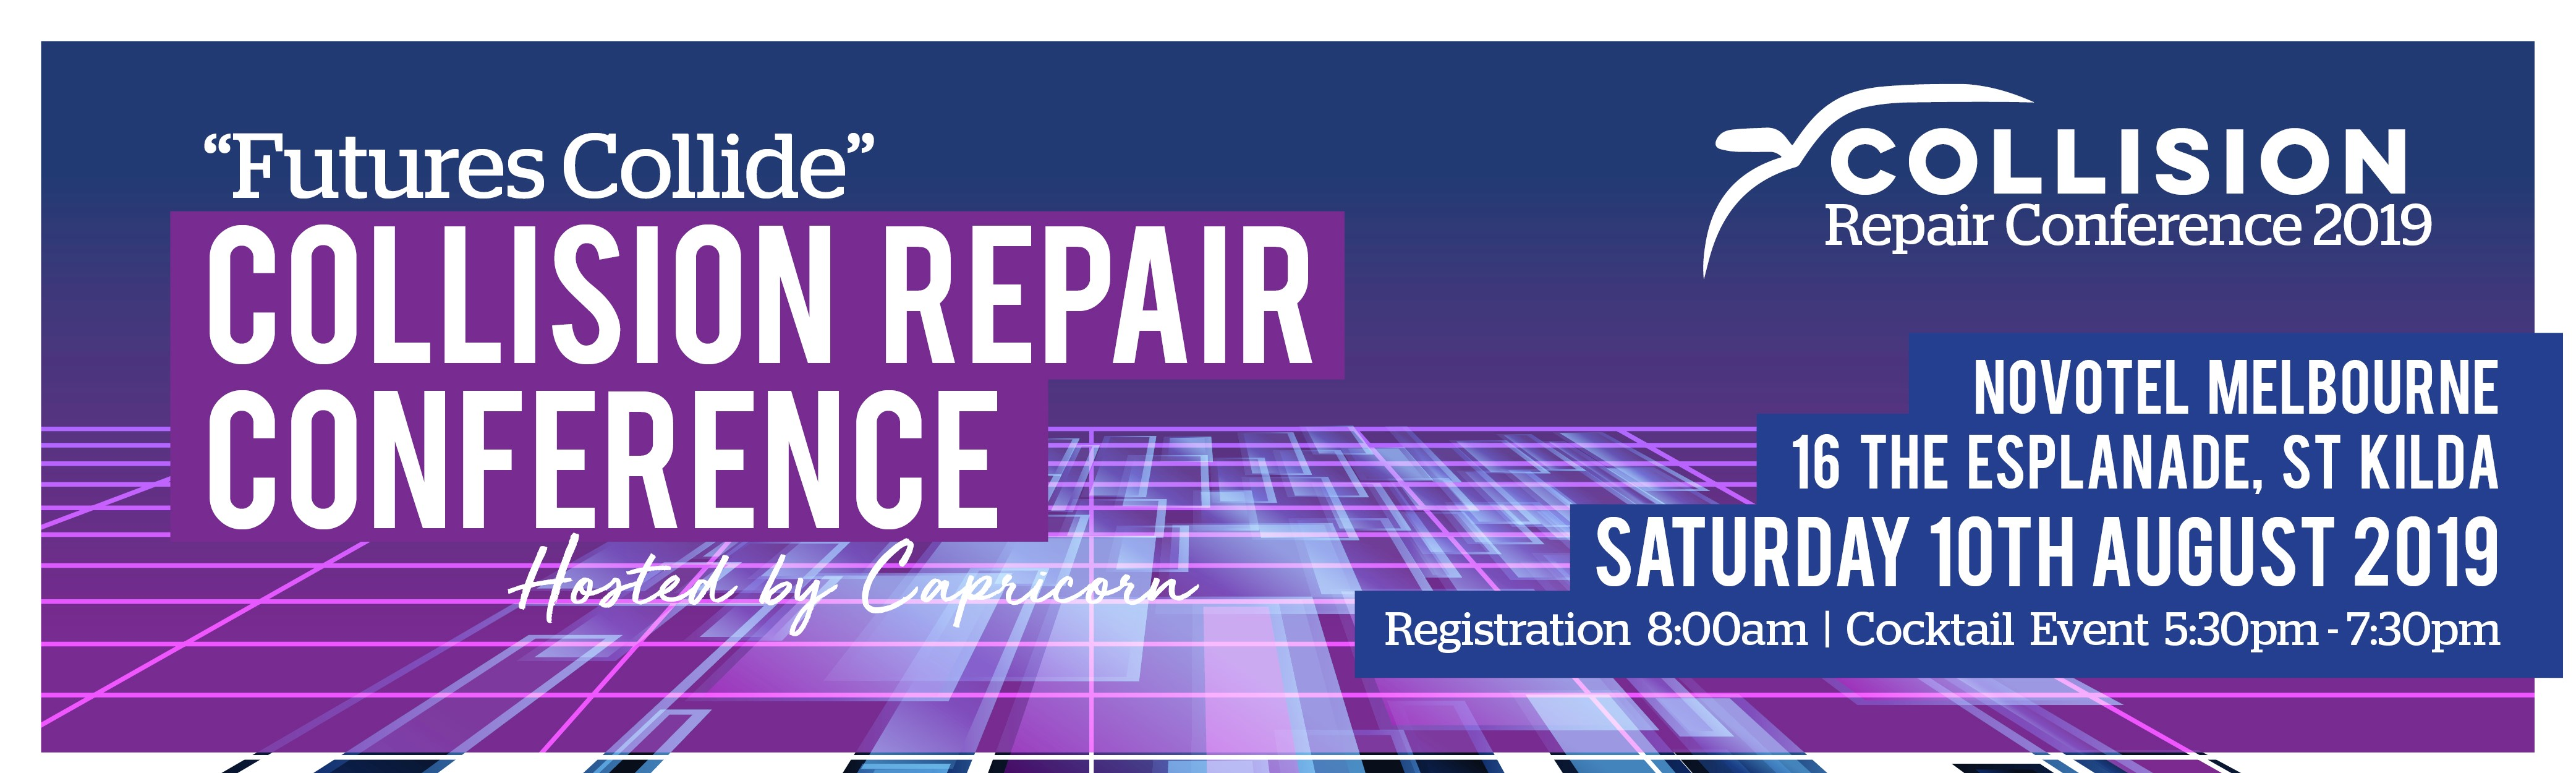 Collision Repair Conference Banner